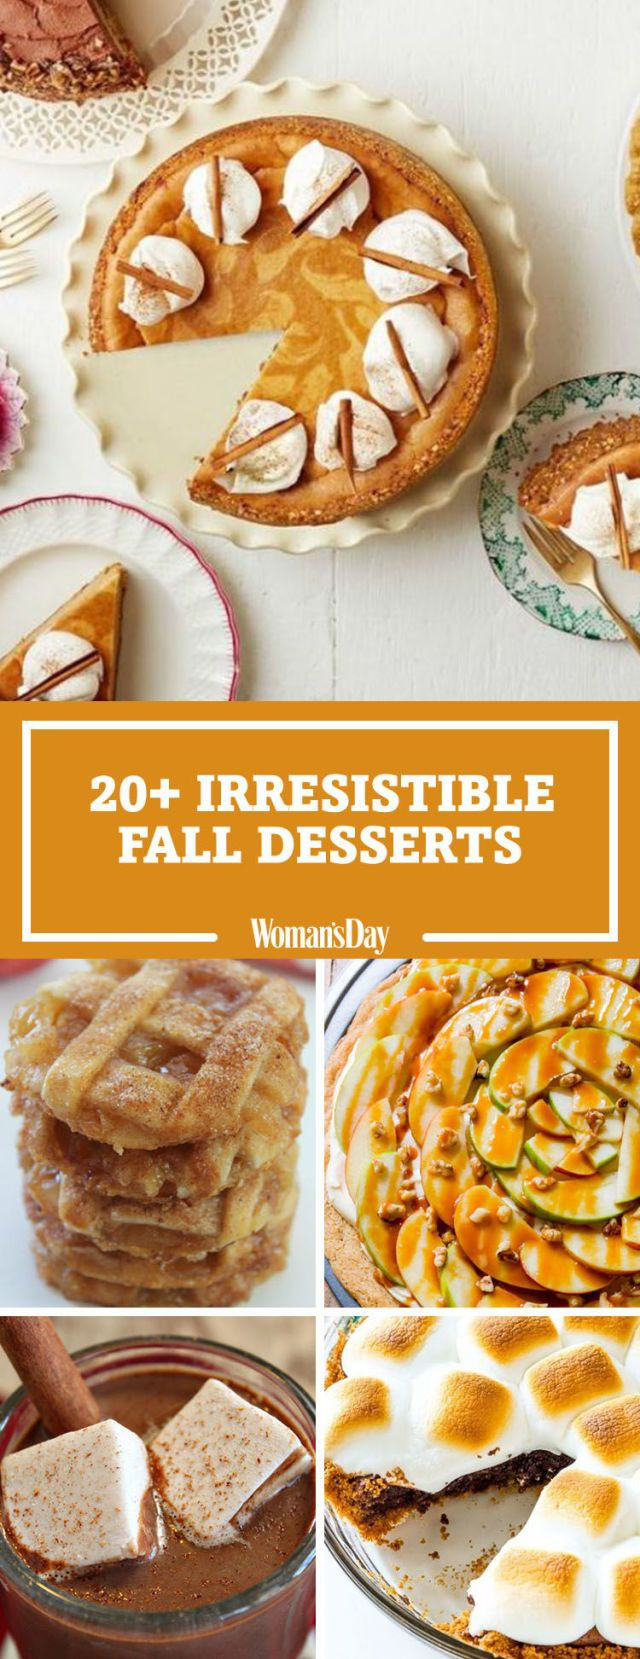 Best Fall Desserts  31 Easy Fall Desserts Best Recipes for Autumn Desserts